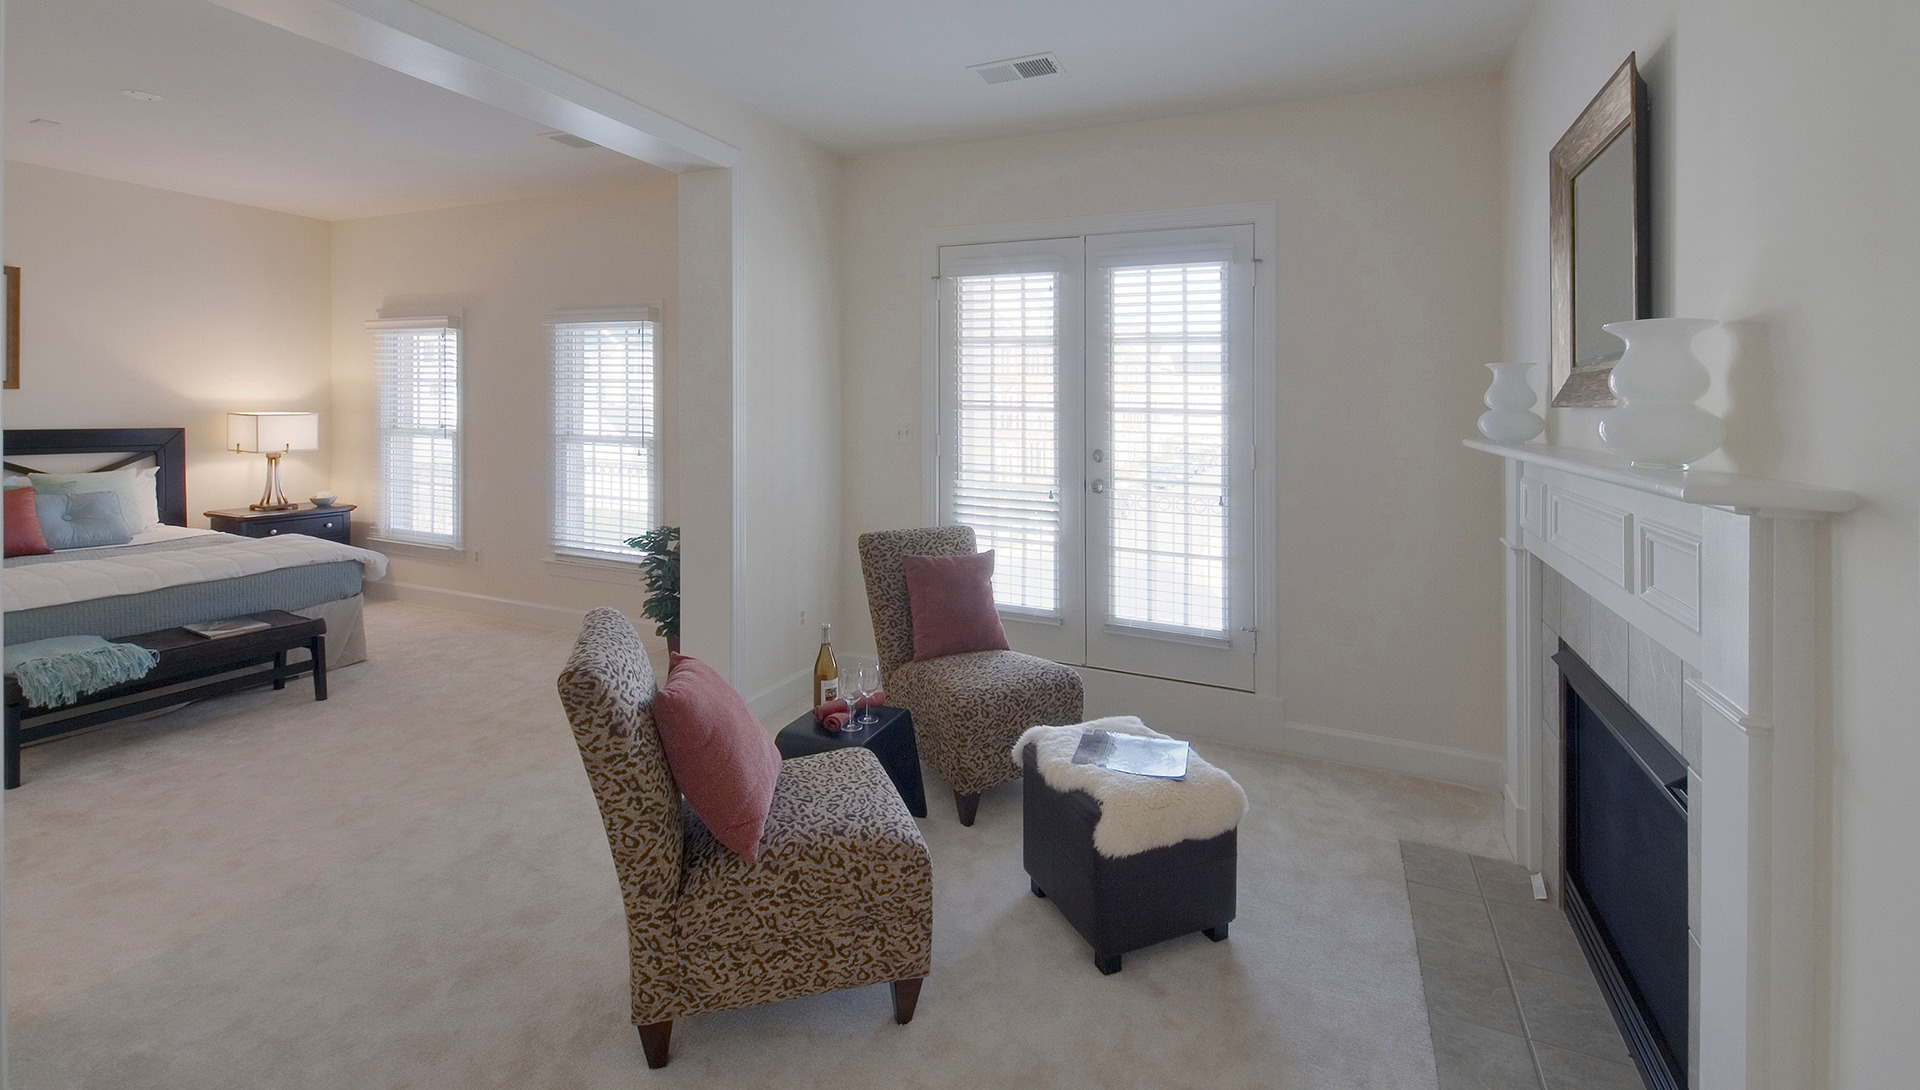 The Owner's Sitting Room in the Hampton model in Brambleton. Some options shown.